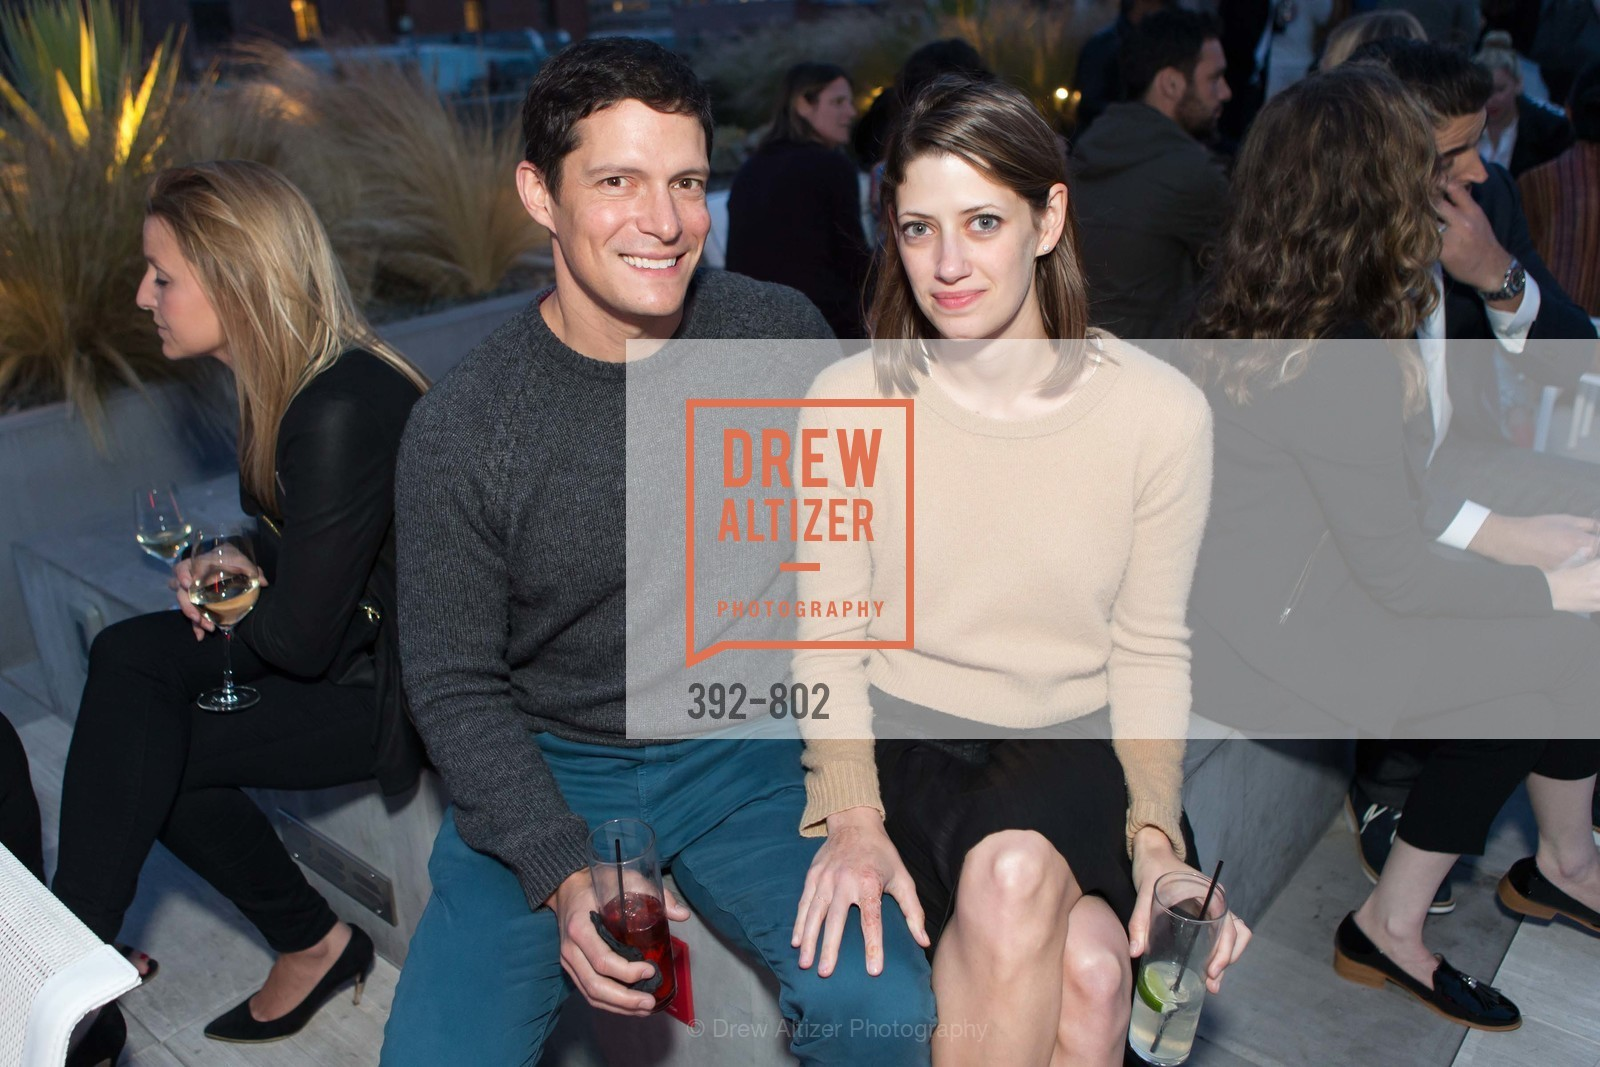 Noah Yago, Alyza Edelstein, MR PORTER Celebrate The San Francisco Issue of The Journal, US, April 23rd, 2015,Drew Altizer, Drew Altizer Photography, full-service agency, private events, San Francisco photographer, photographer california